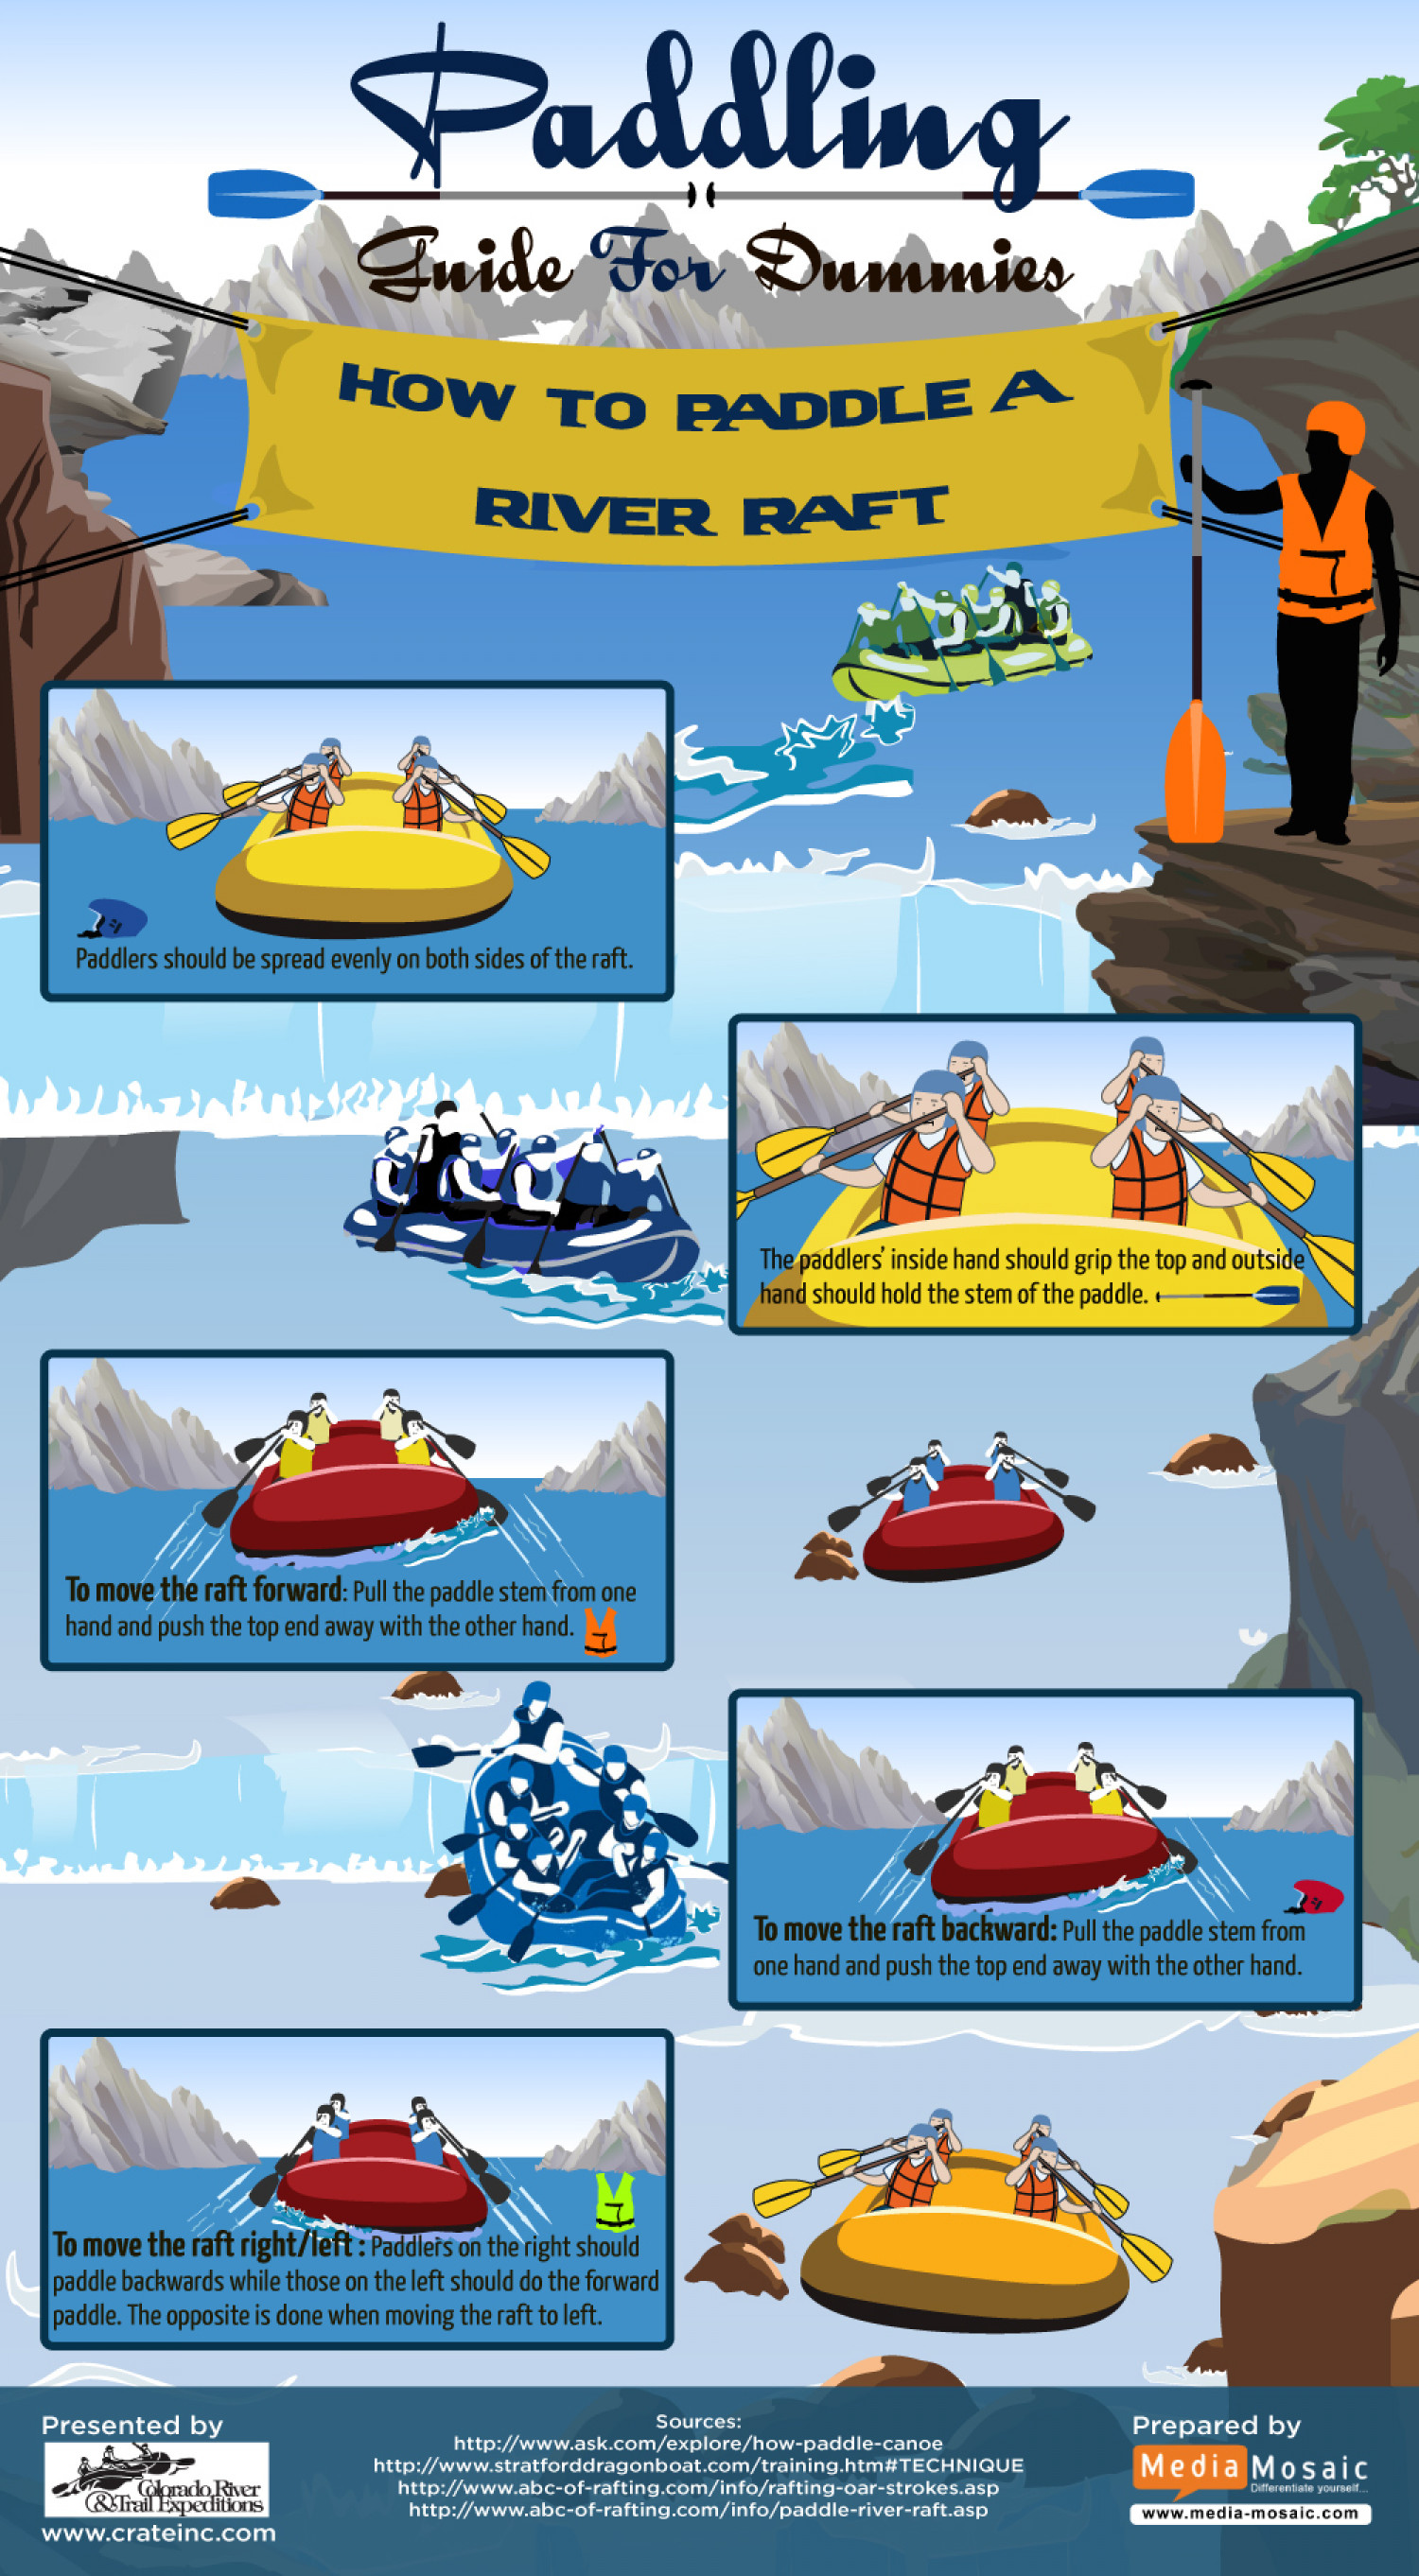 Paddling Guides for Dummies: How to Paddle a River Raft [Infographic] Infographic